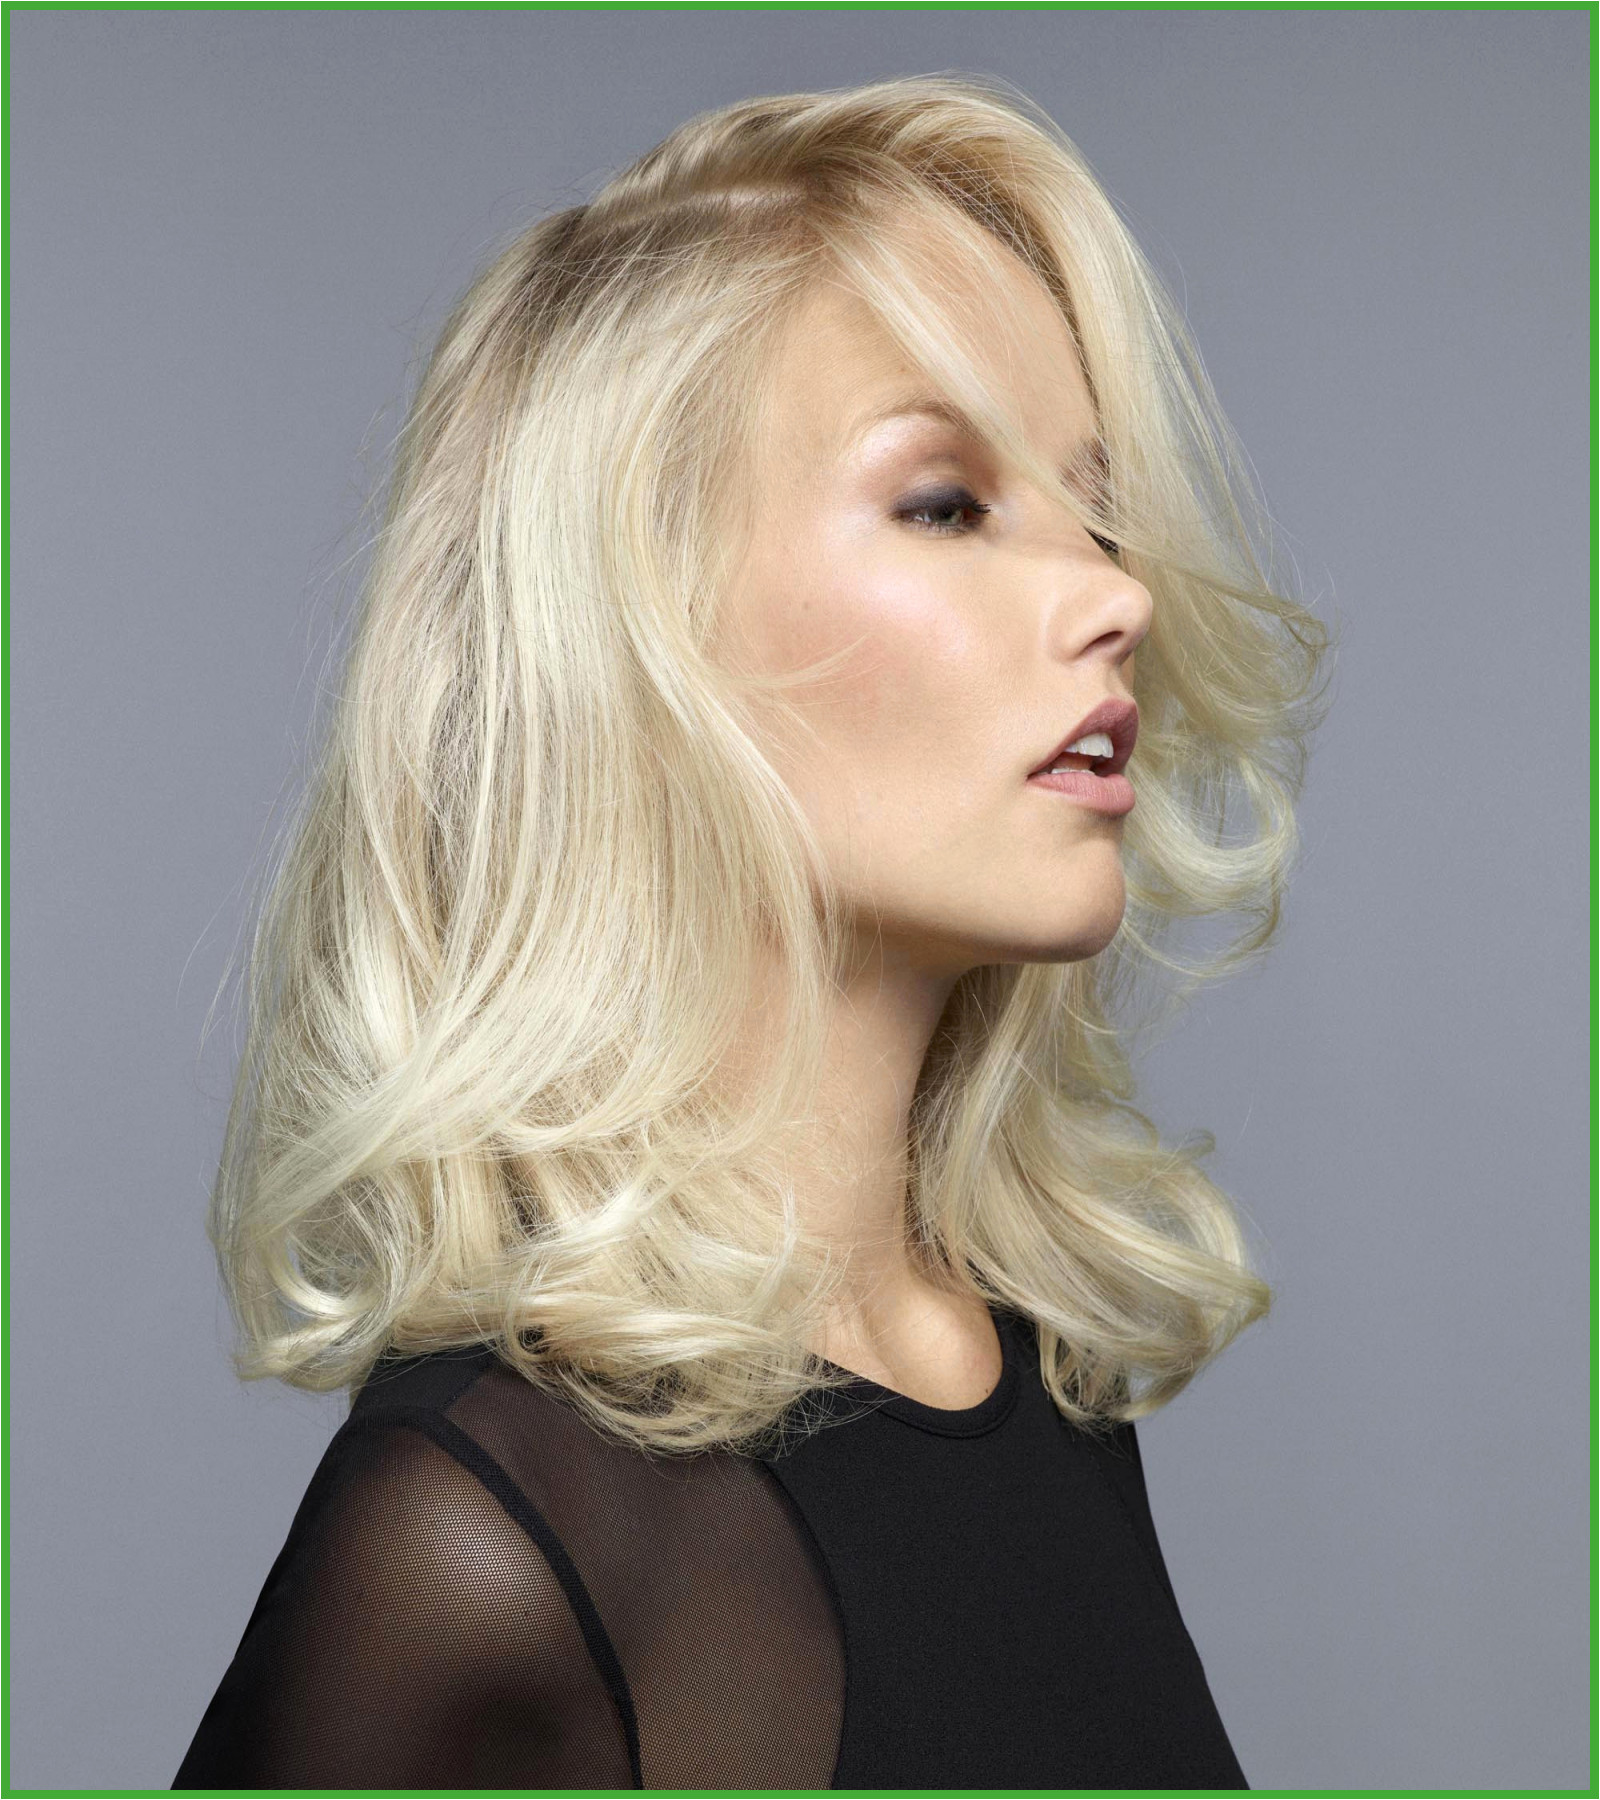 Short Black Hairstyles for Oval Faces New Curls Short Hair Exciting Very Curly Hairstyles Fresh Curly